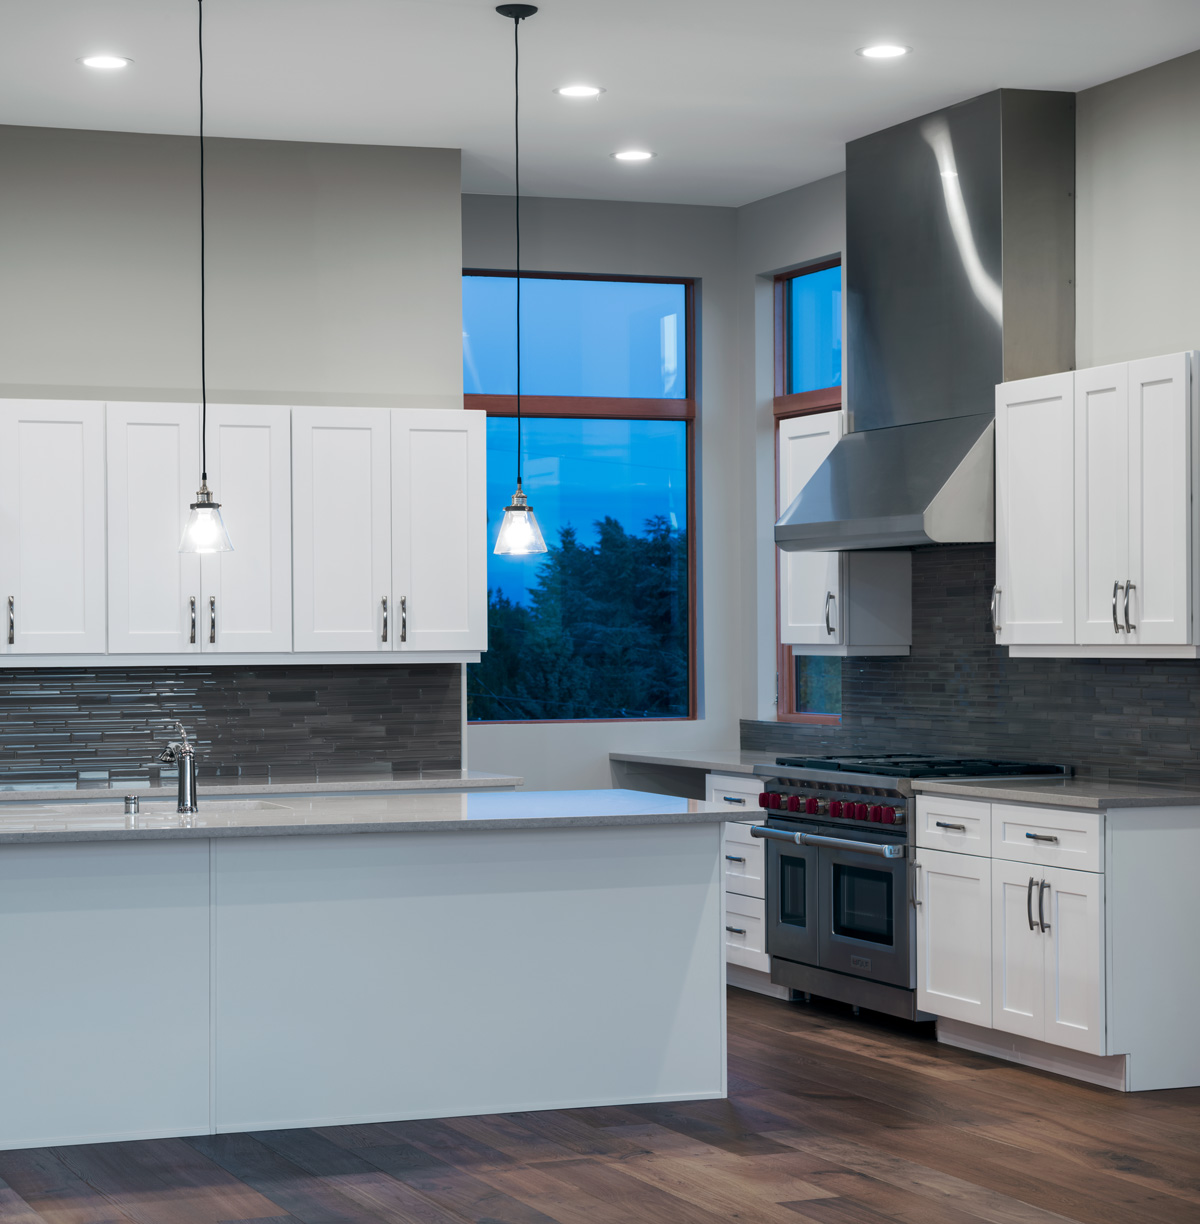 view of a kitchen var overlooking spacious living room